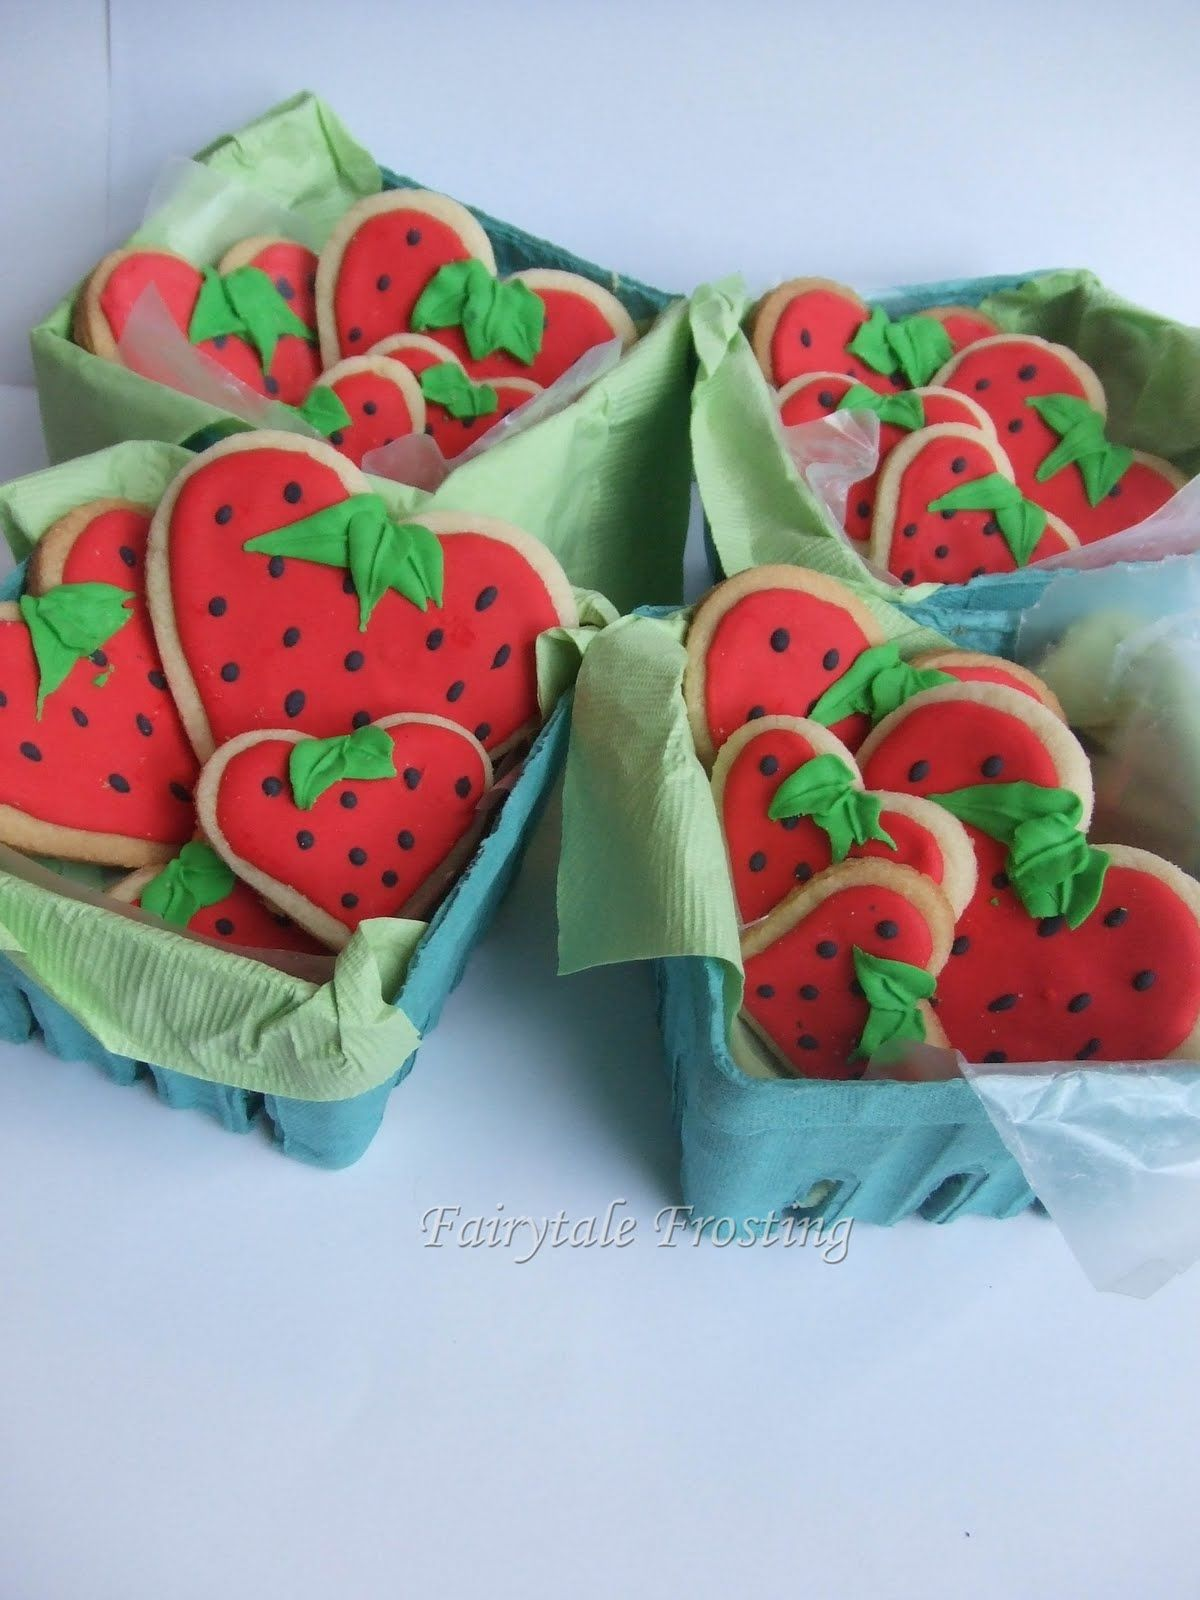 Fairytale Frosting: Strawberry Hearts Baskets- cute!